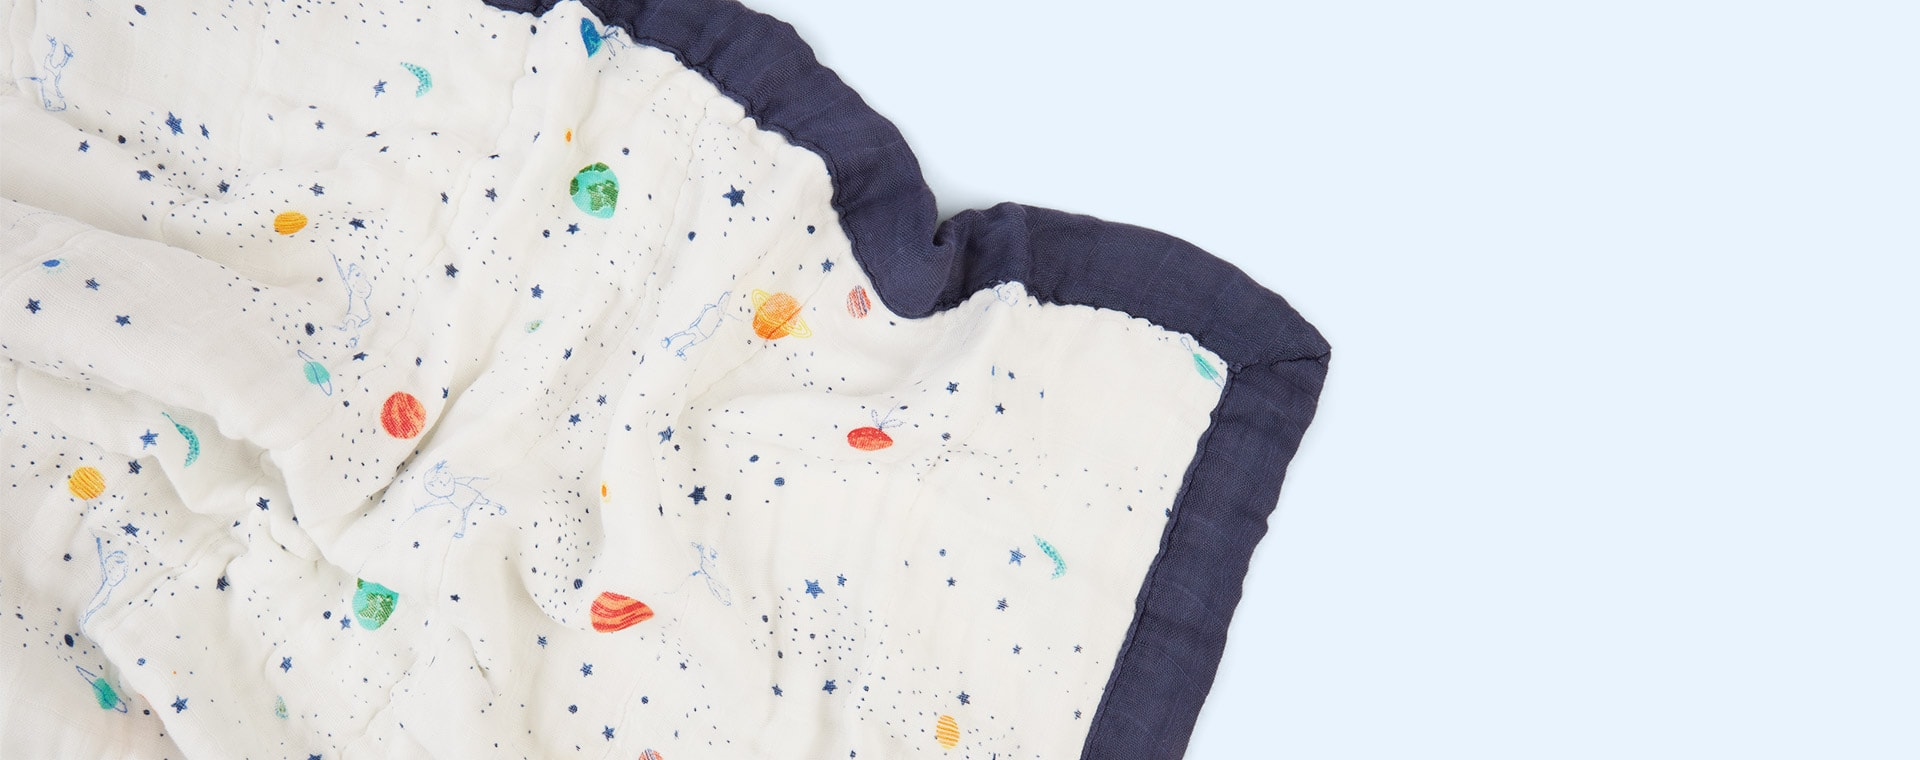 Stargaze aden + anais Silky Soft Dream Blanket